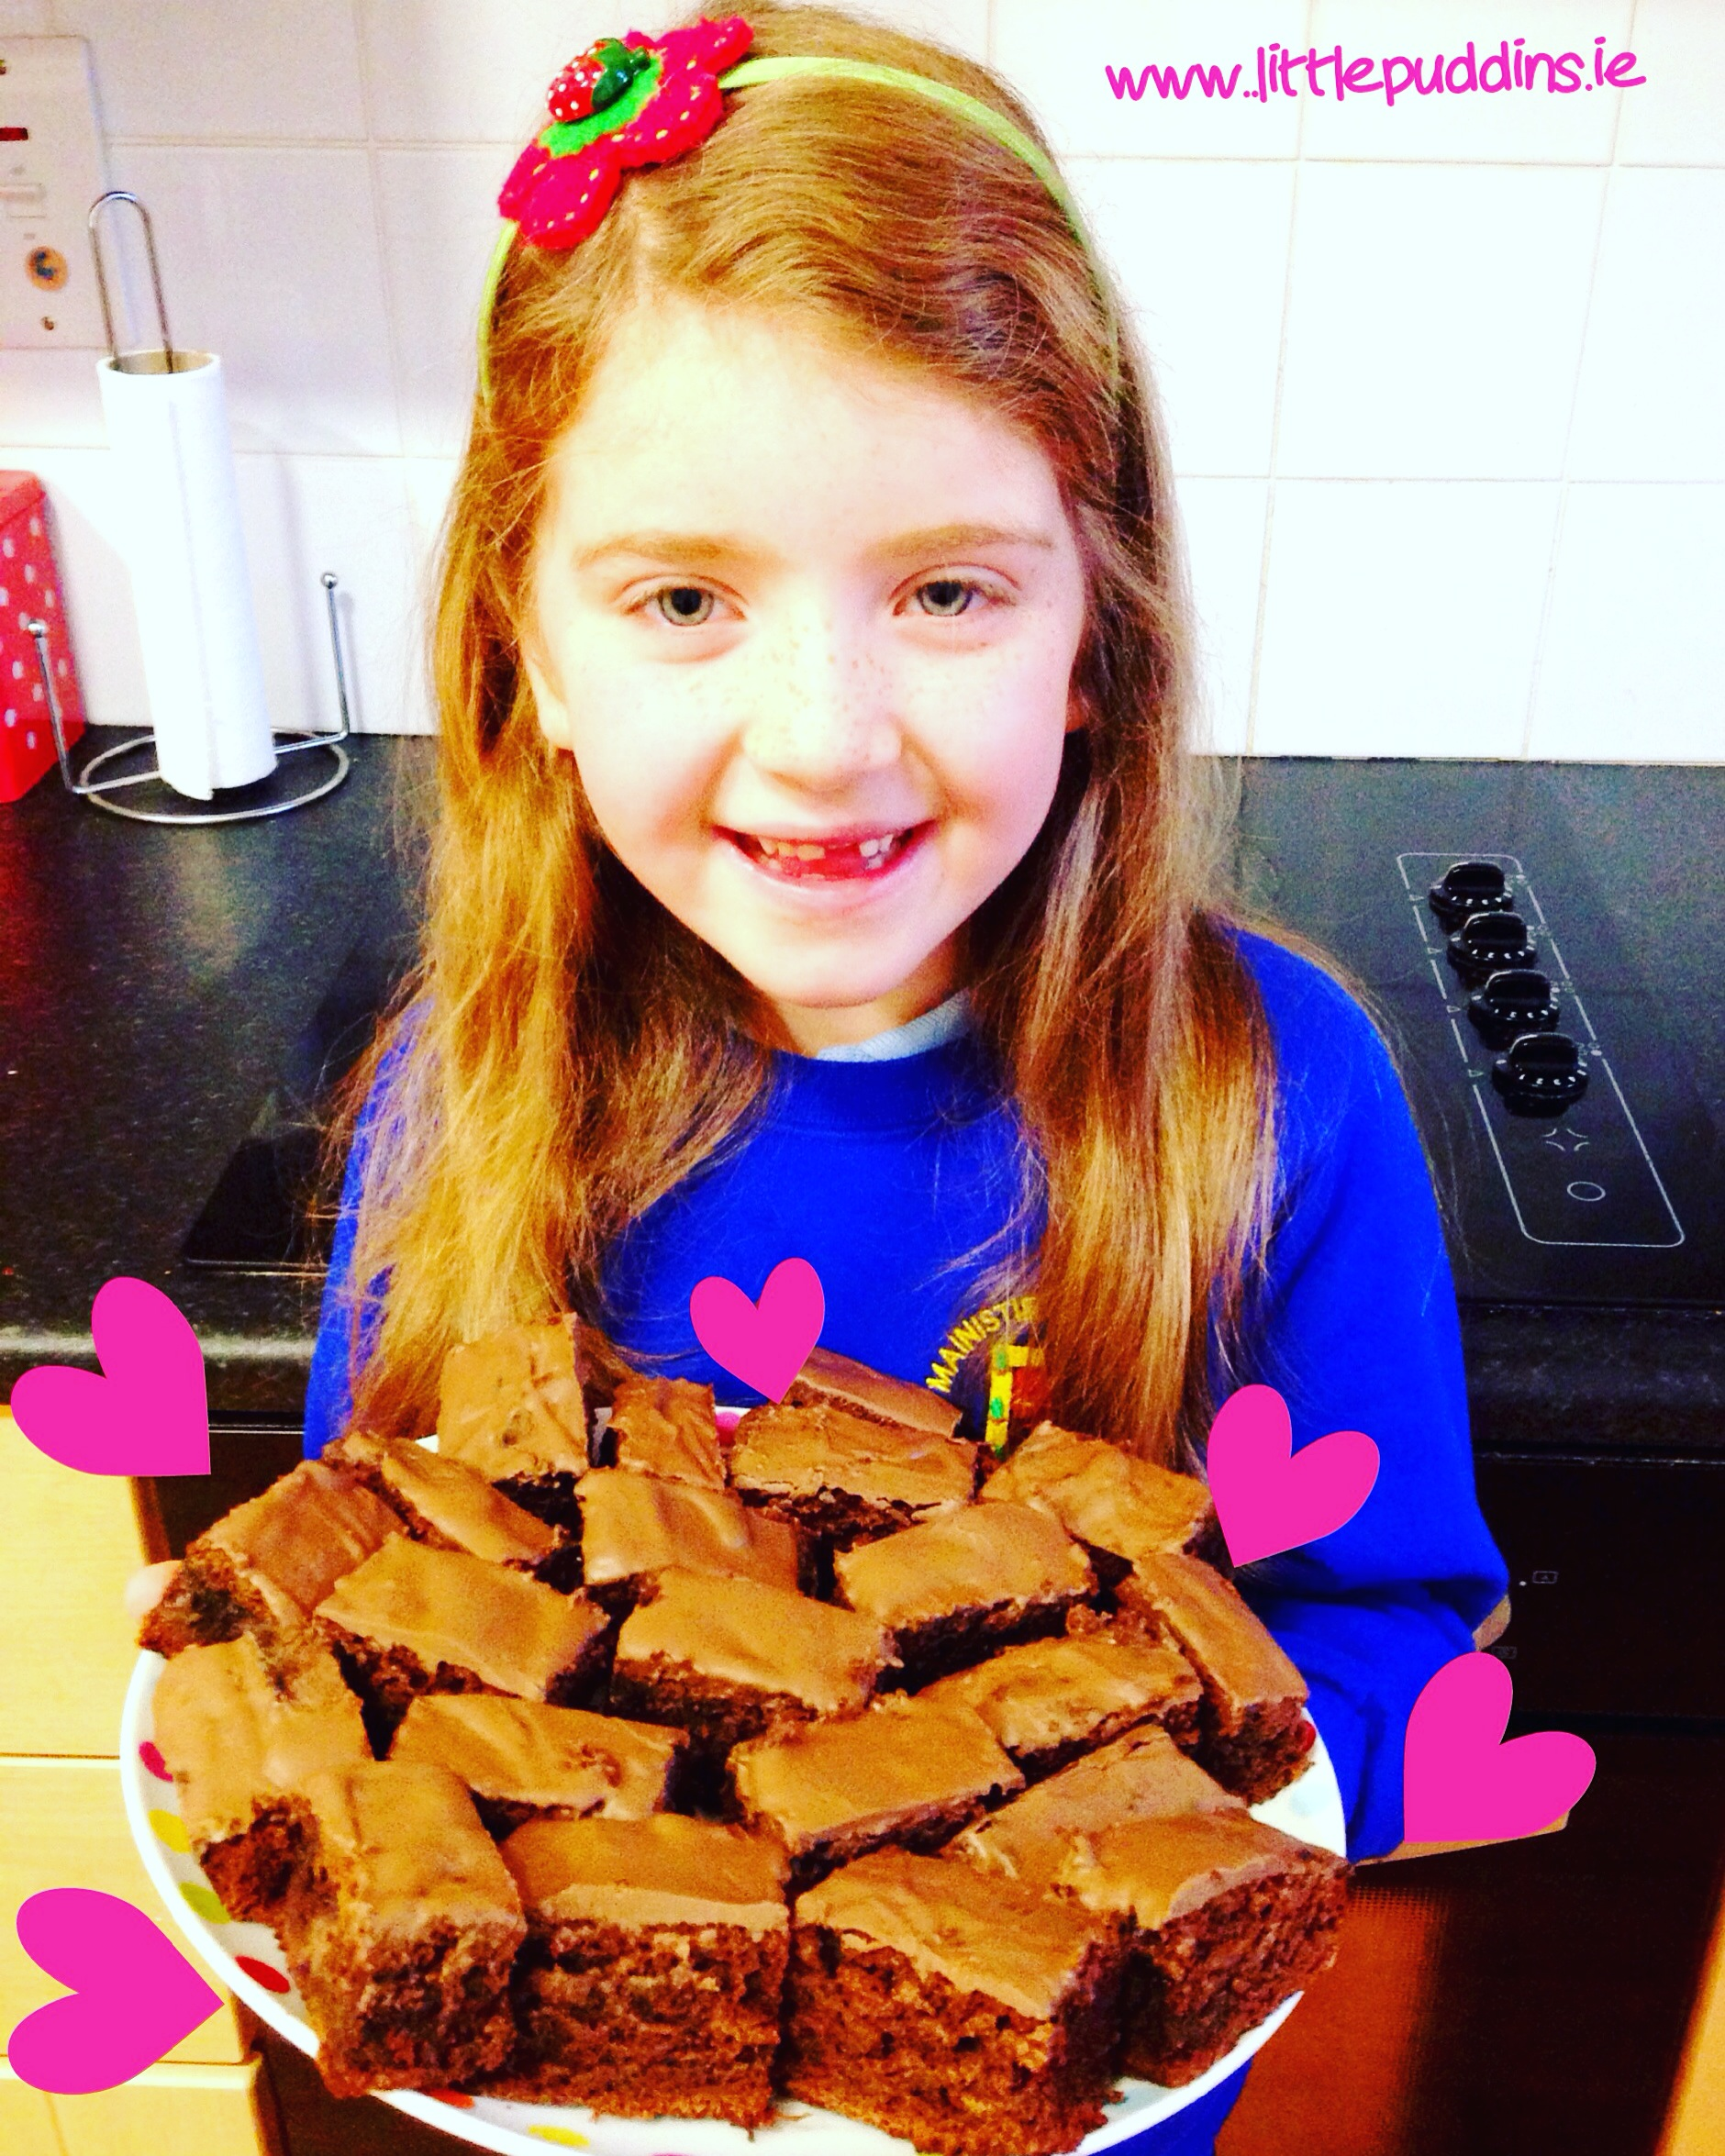 Baker Hailey delighted with her Chocolate Brownies.x